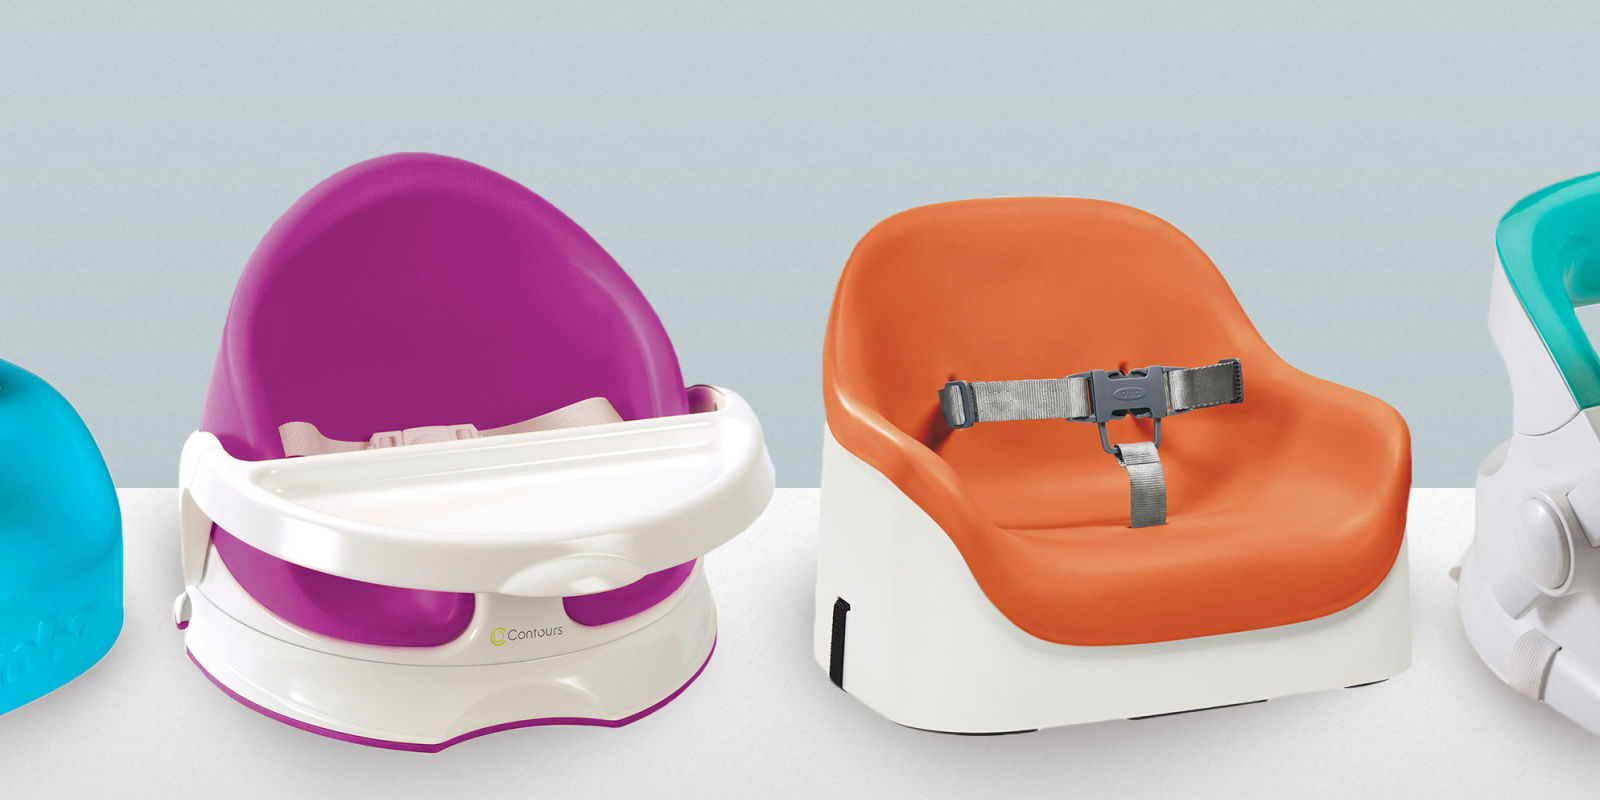 12 Best Booster Seats of 2016 Travel Booster Seats for  : landscape 1449504801 kids booster seats from www.bestproducts.com size 1600 x 800 jpeg 100kB